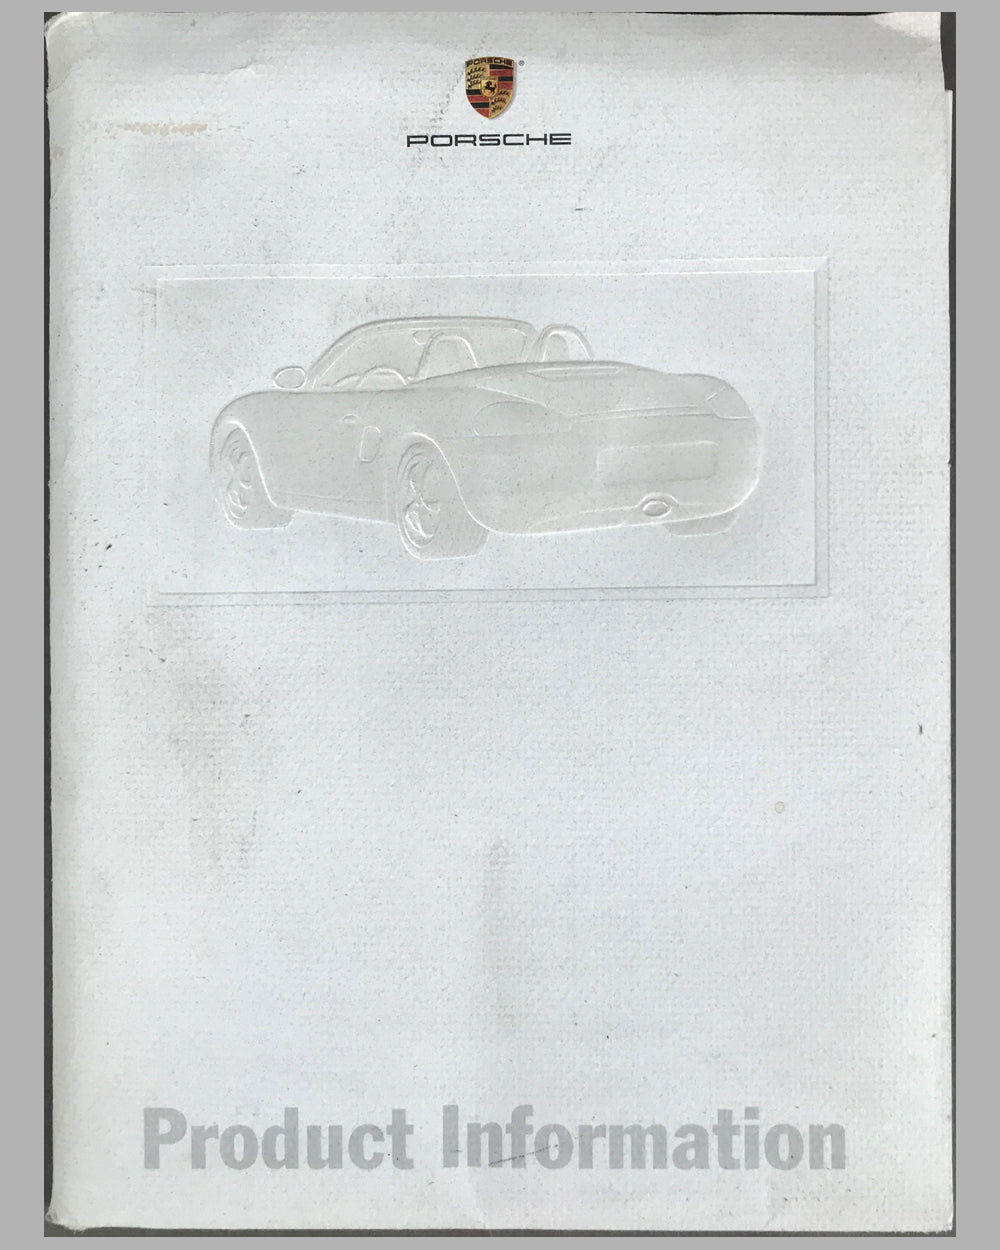 Porsche Boxster press release for the U.S. market on January 3rd 1997